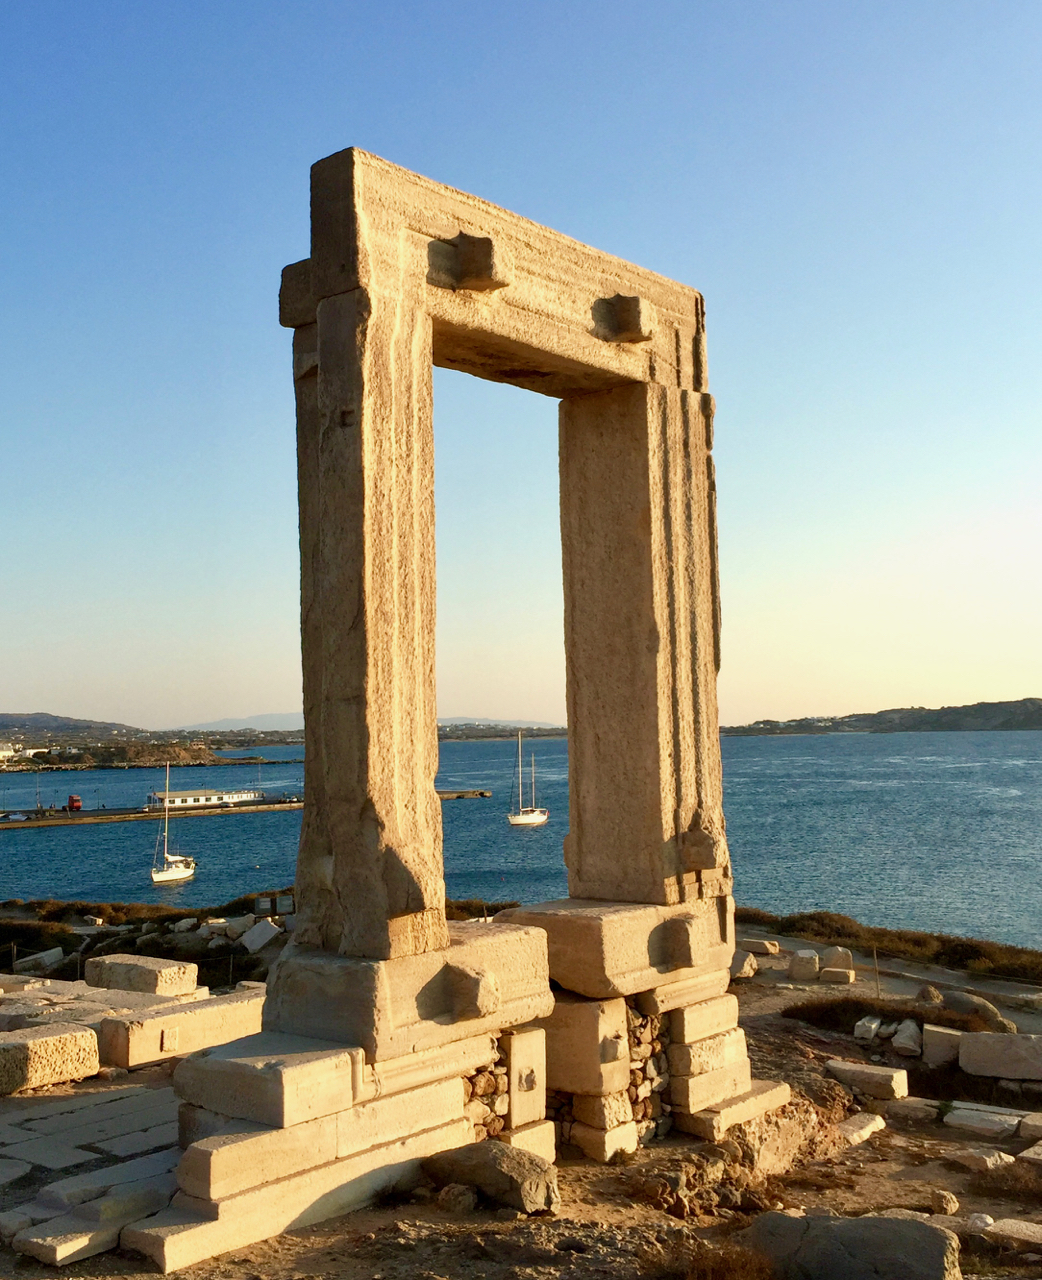 Peregrinus , a white-sailed ship, framed by the 20 foot-tall main door to the 530 B.C. Temple of Apollo. Naxos, 27 September 2017,   iPhone 6 Plus.